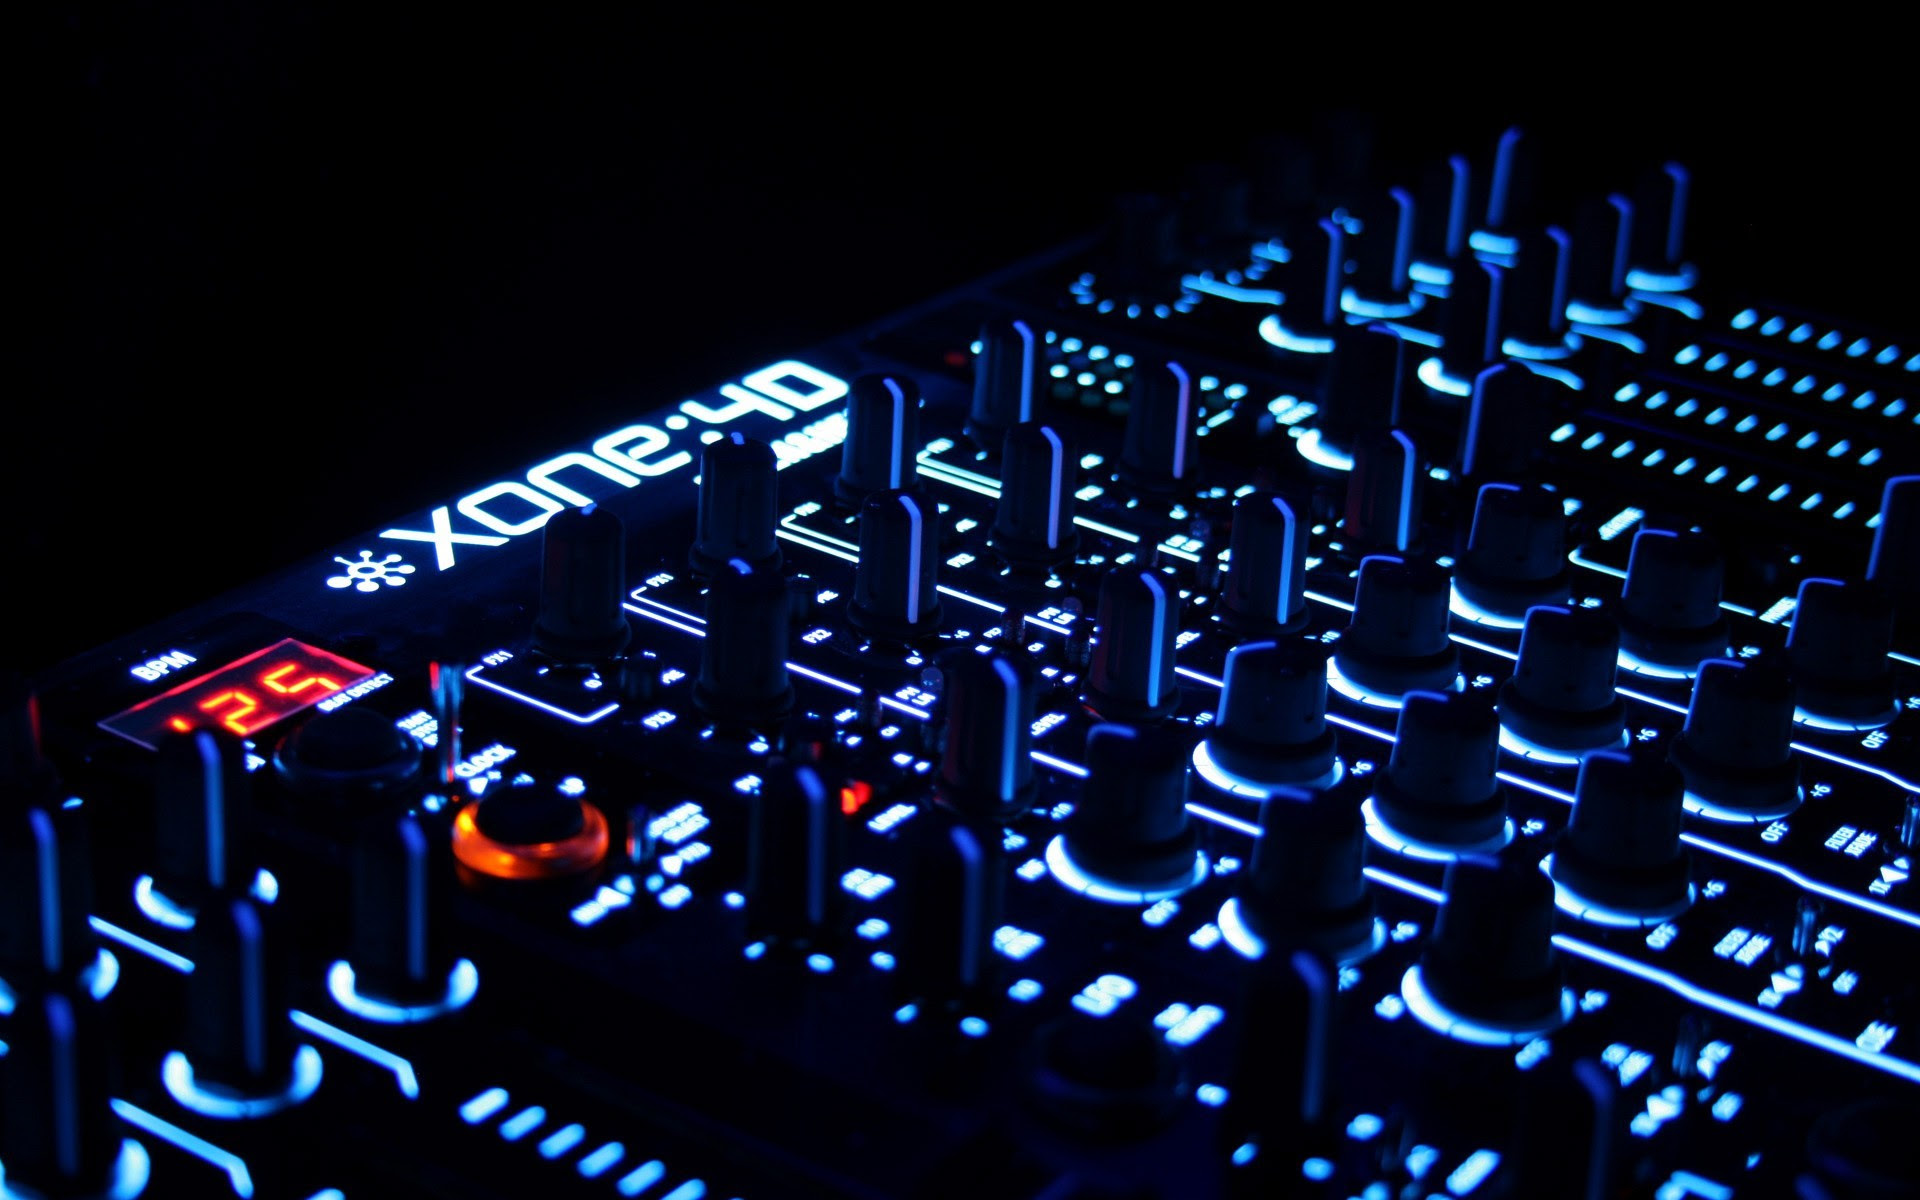 Unduh 880 Background Hd Dj Music Terbaik